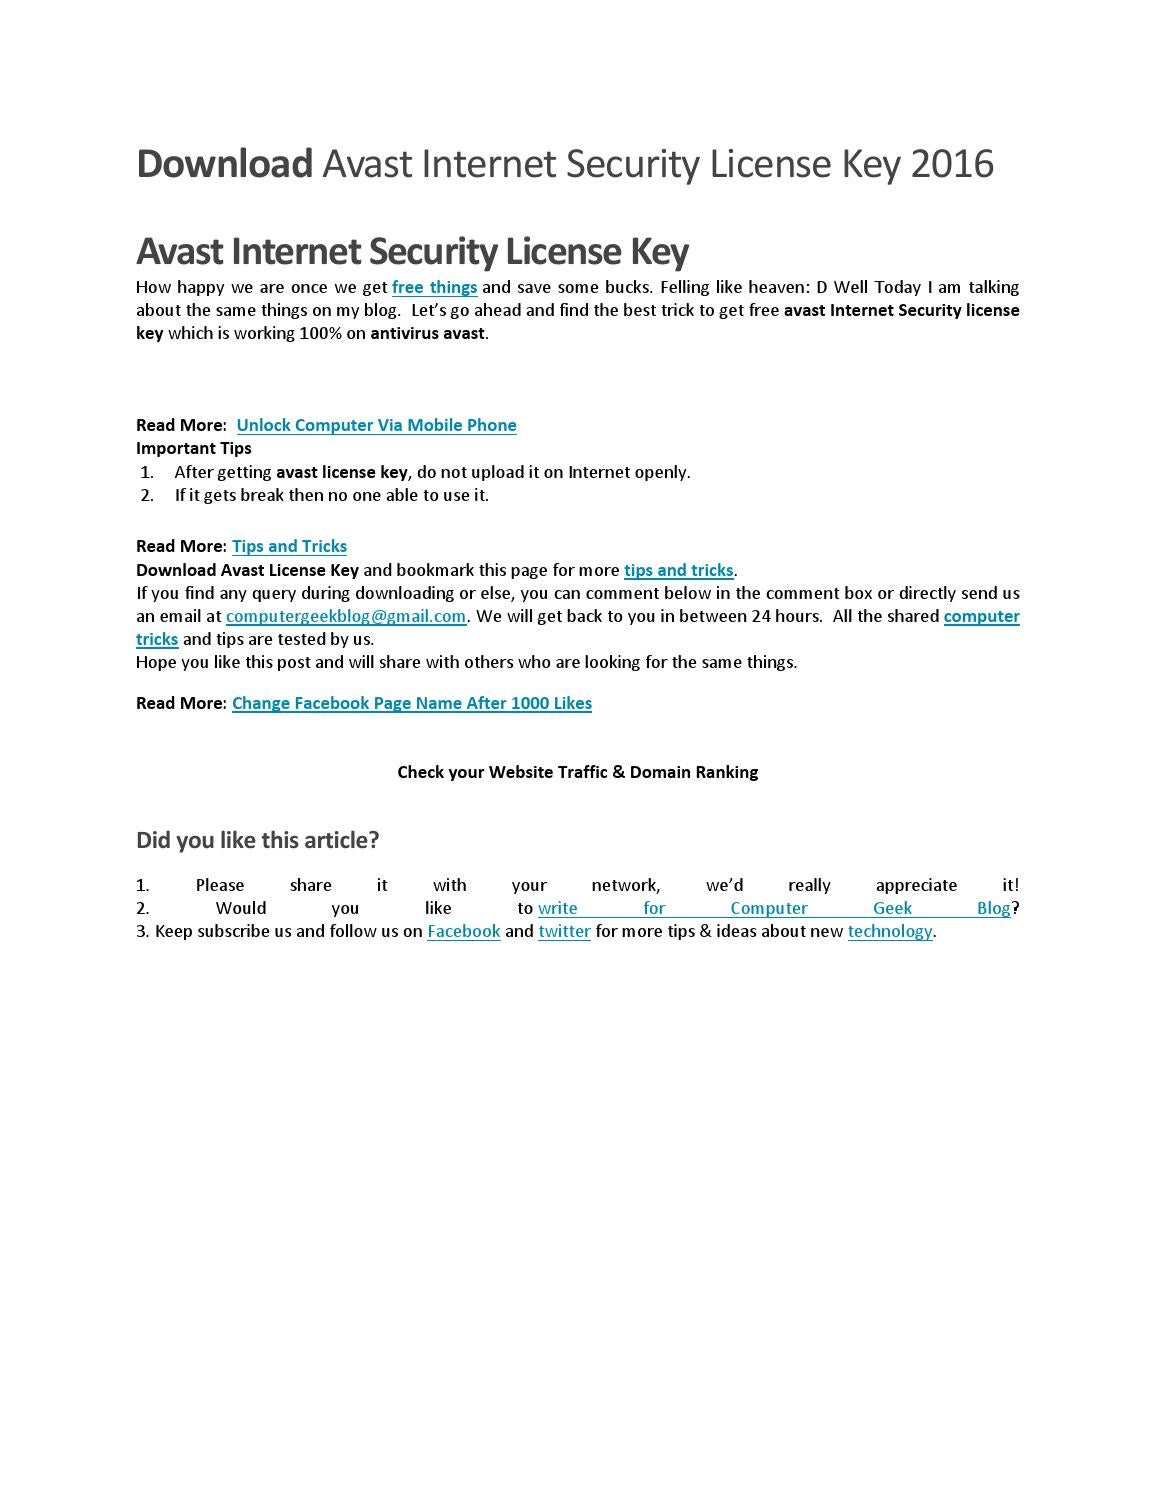 avast internet security licence key download